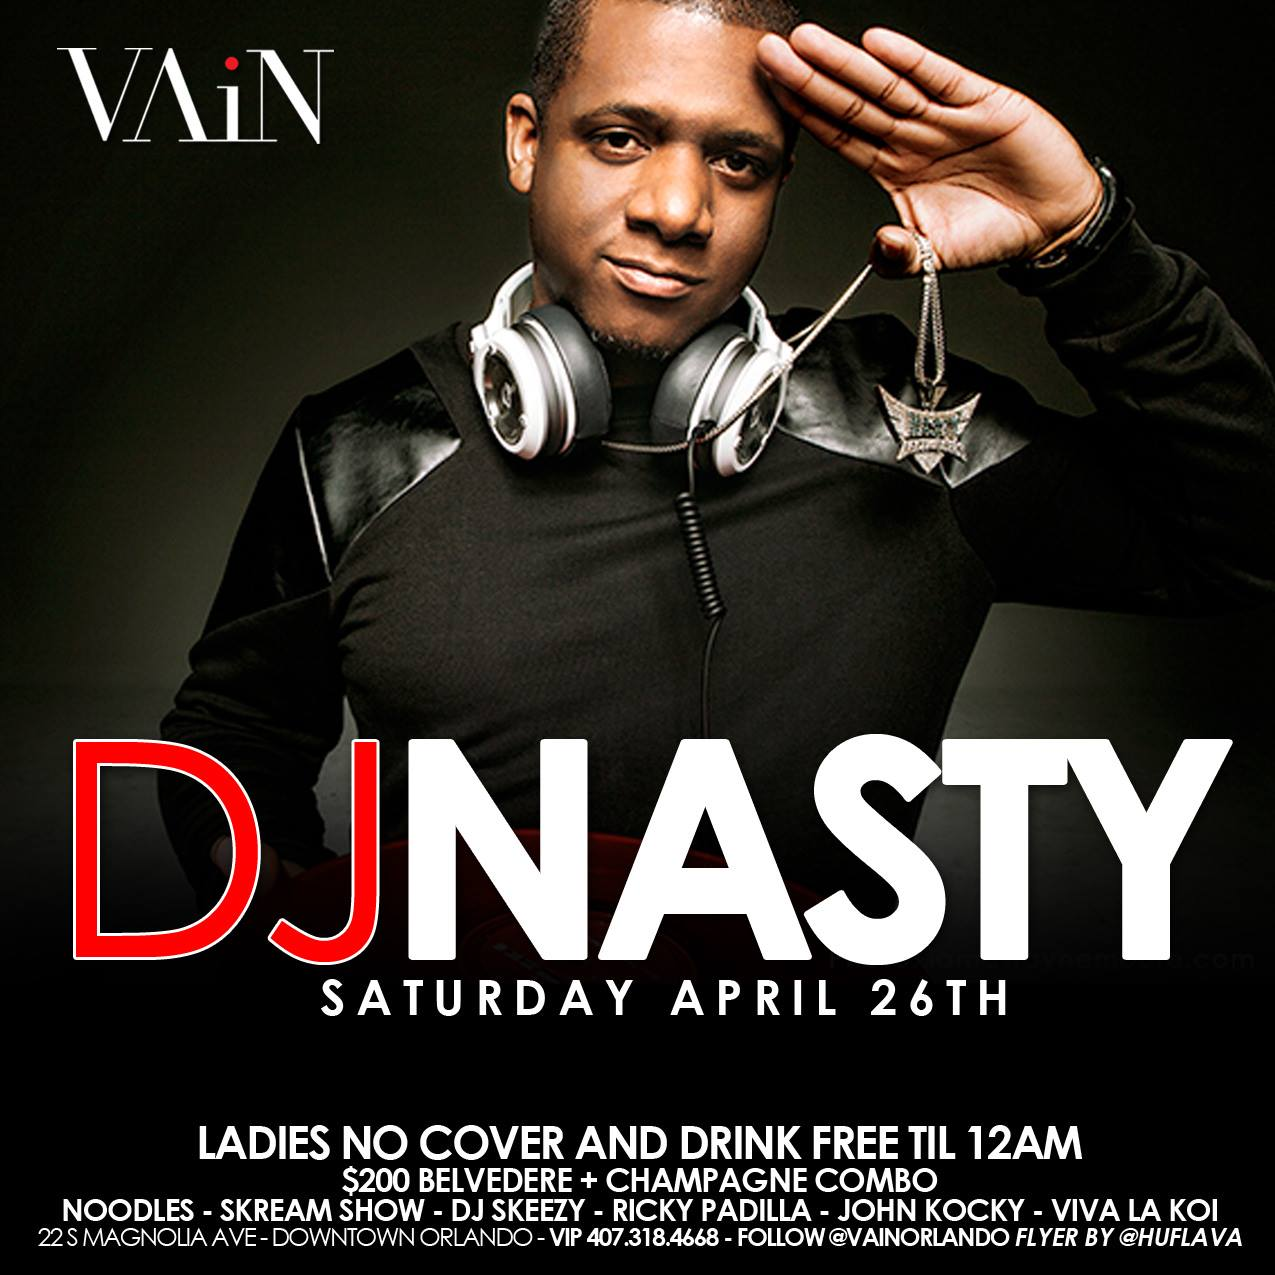 The Grammy Kid DJ Nasty | Xcess Saturdays